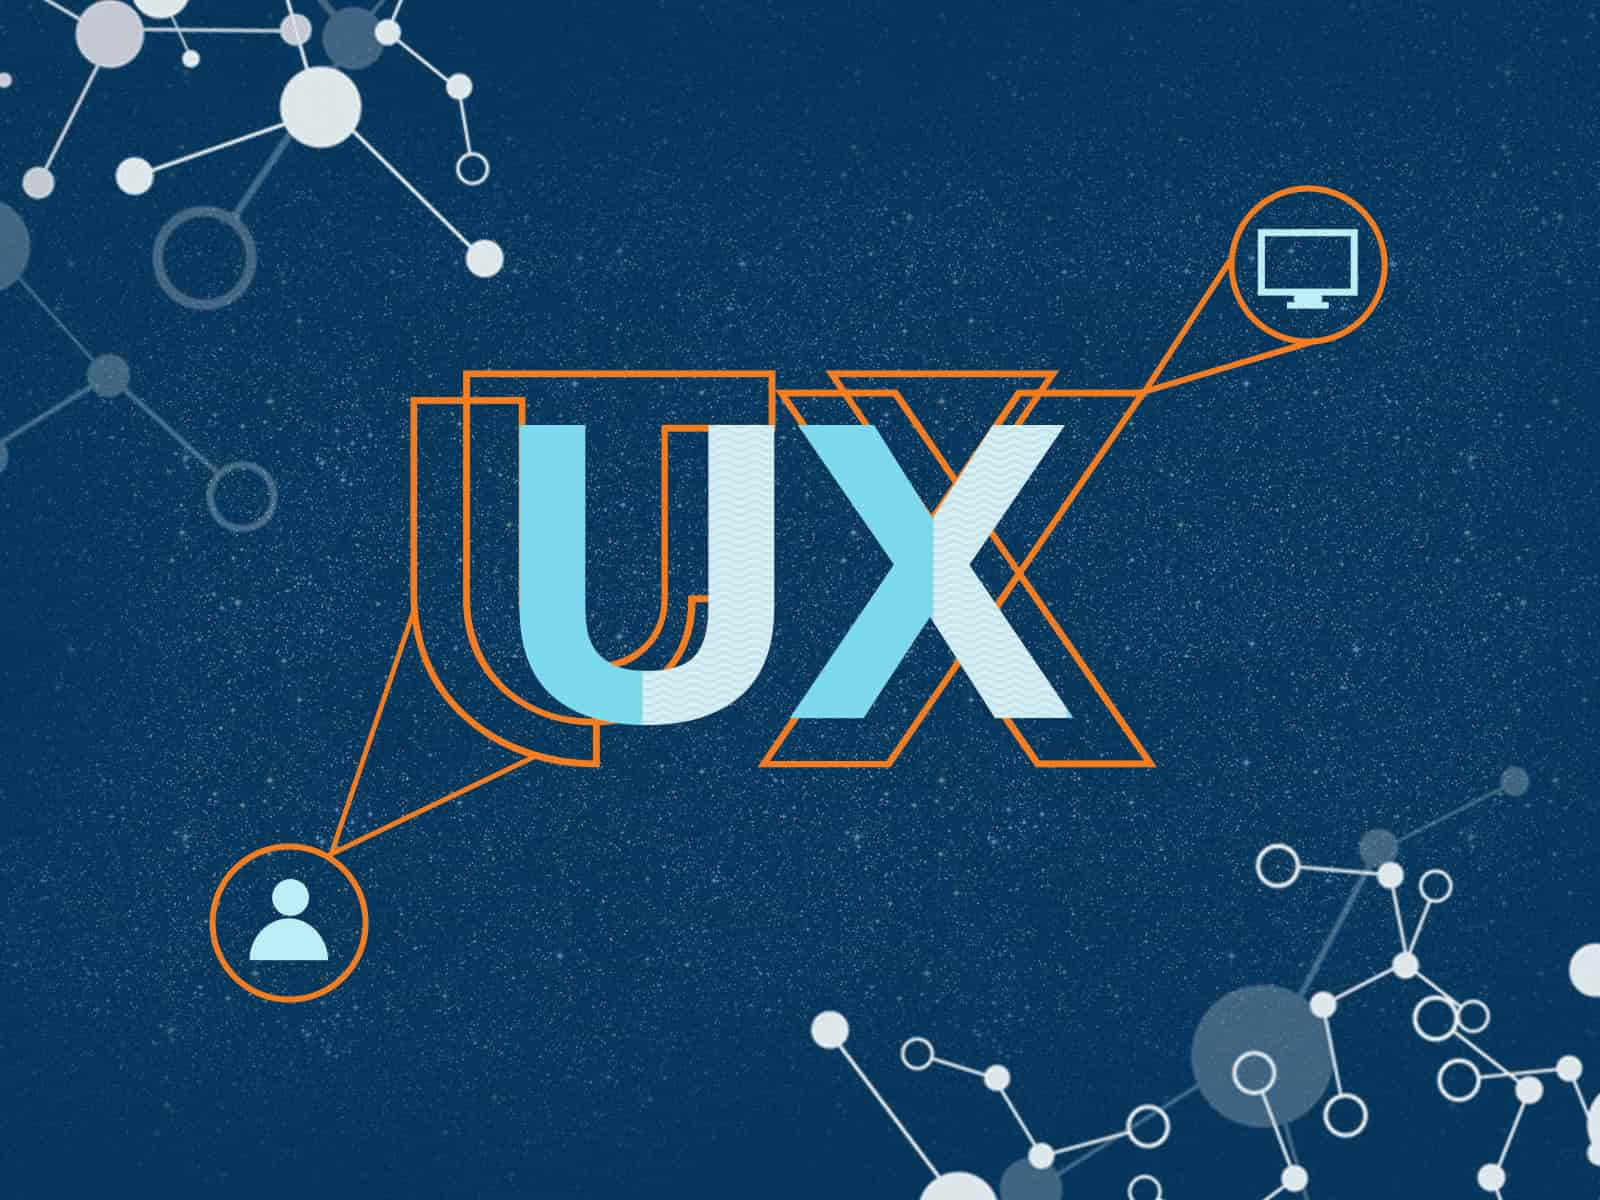 Ms In Ui Ux Interaction Design In Usa Masters In Ui Ux Interaction Design In Usa Study Ui Ux Interaction Design In Usa For Indian Students Gousa